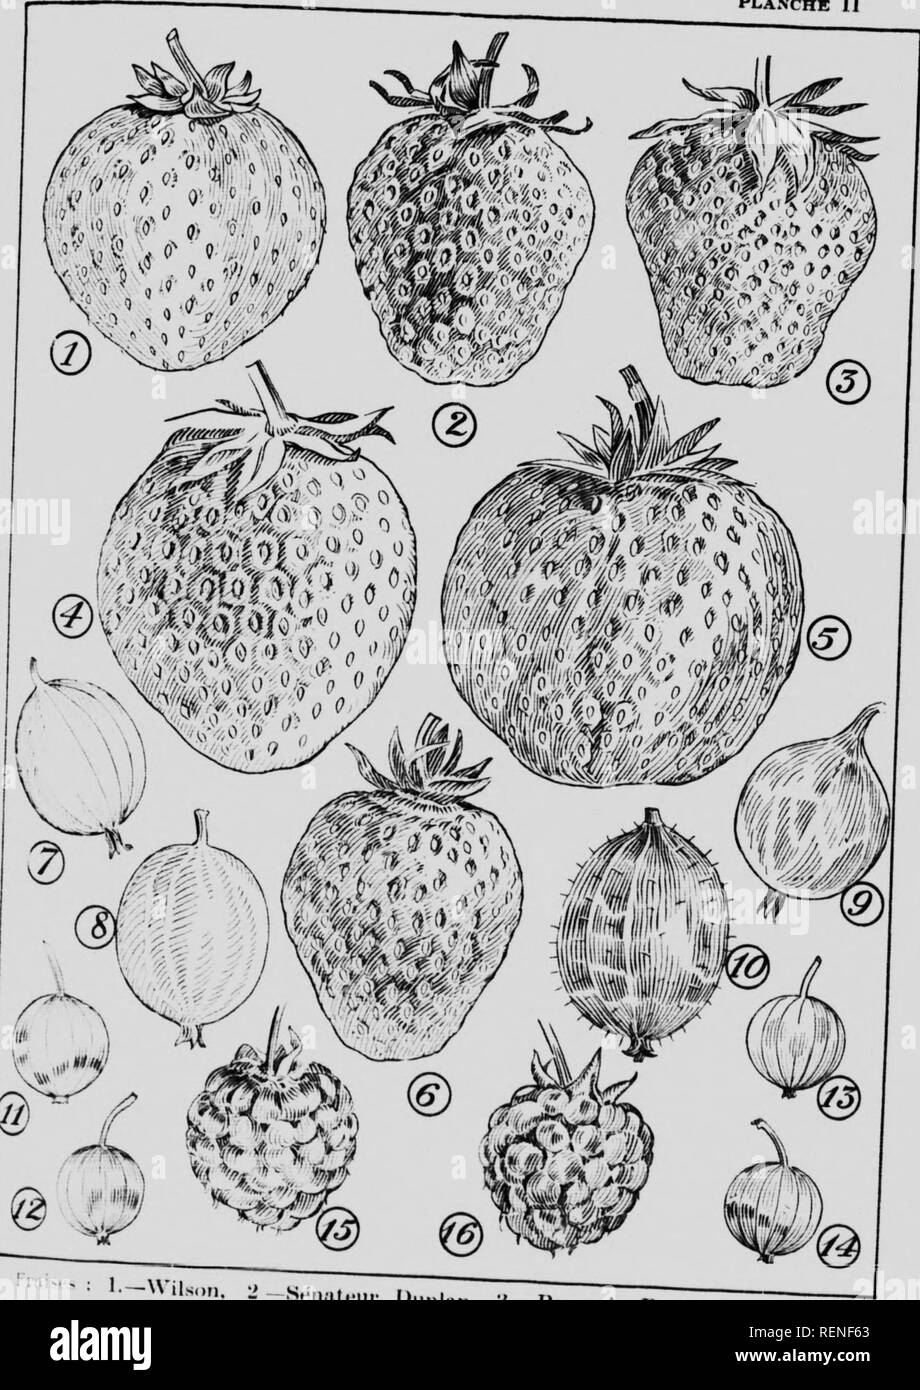 . De la culture des arbustres fruitiers [microforme]. Arboriculture fruitière; Fruit-culture. PLANCHE II. 1—Vils,.n ildei-.. Please note that these images are extracted from scanned page images that may have been digitally enhanced for readability - coloration and appearance of these illustrations may not perfectly resemble the original work.. Pétraz, Francisque; Lavoie, J. -H. (Joseph-Henri), né 1887; Québec (Province). Département de l'agriculture. [Québec] : Dép. de l'agriculture - Stock Image